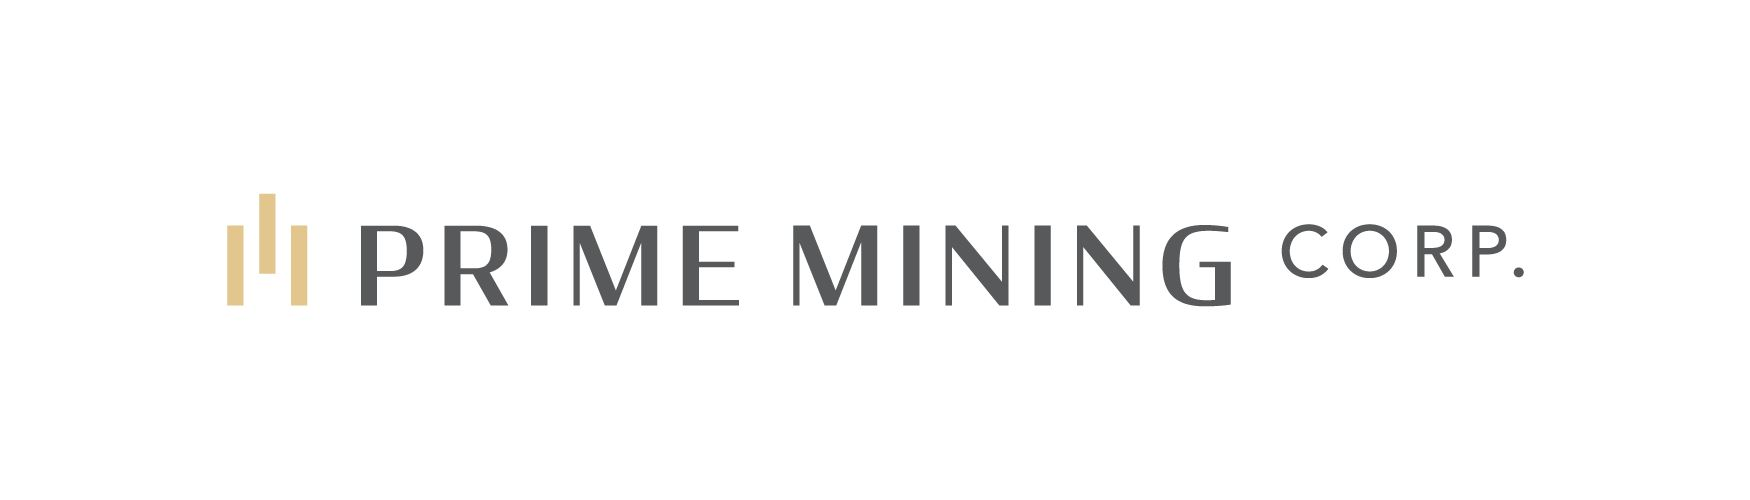 Prime Mining Provides Update On Plans And Operations In Response To Covid-19